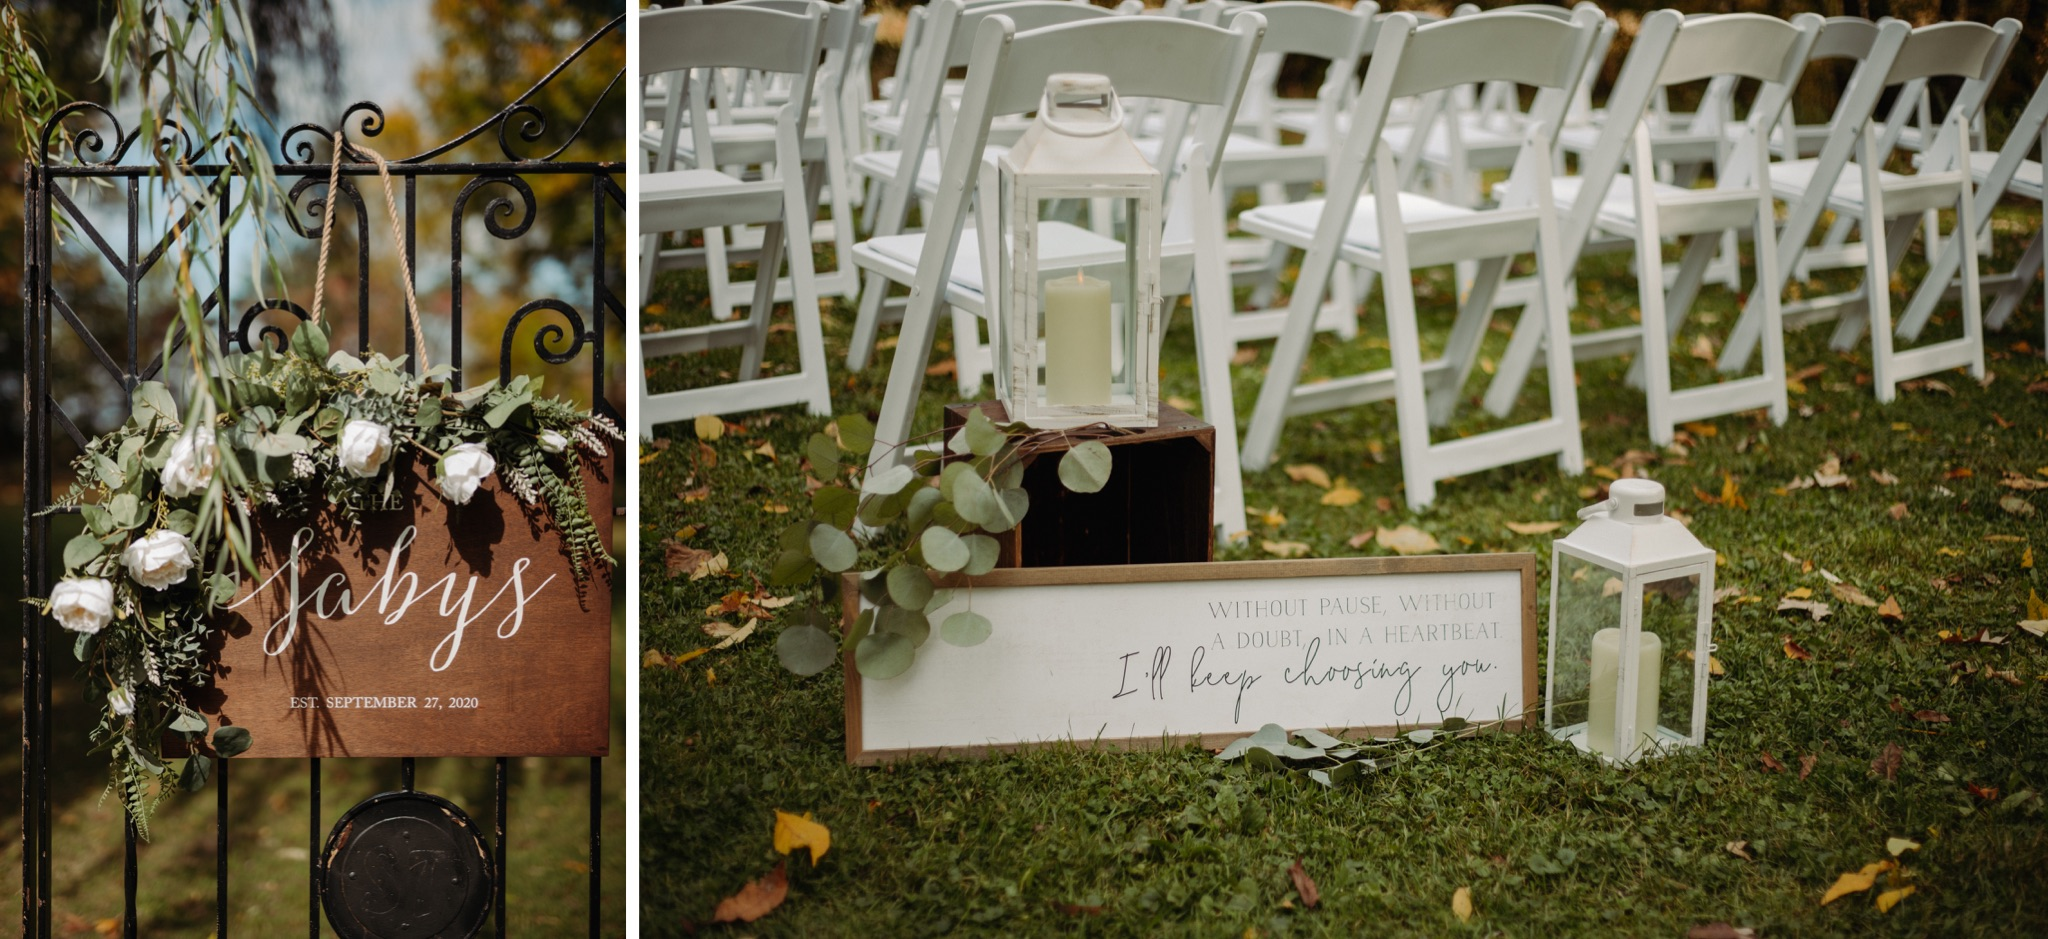 ceremony chairs and wooded sign with a quote on in